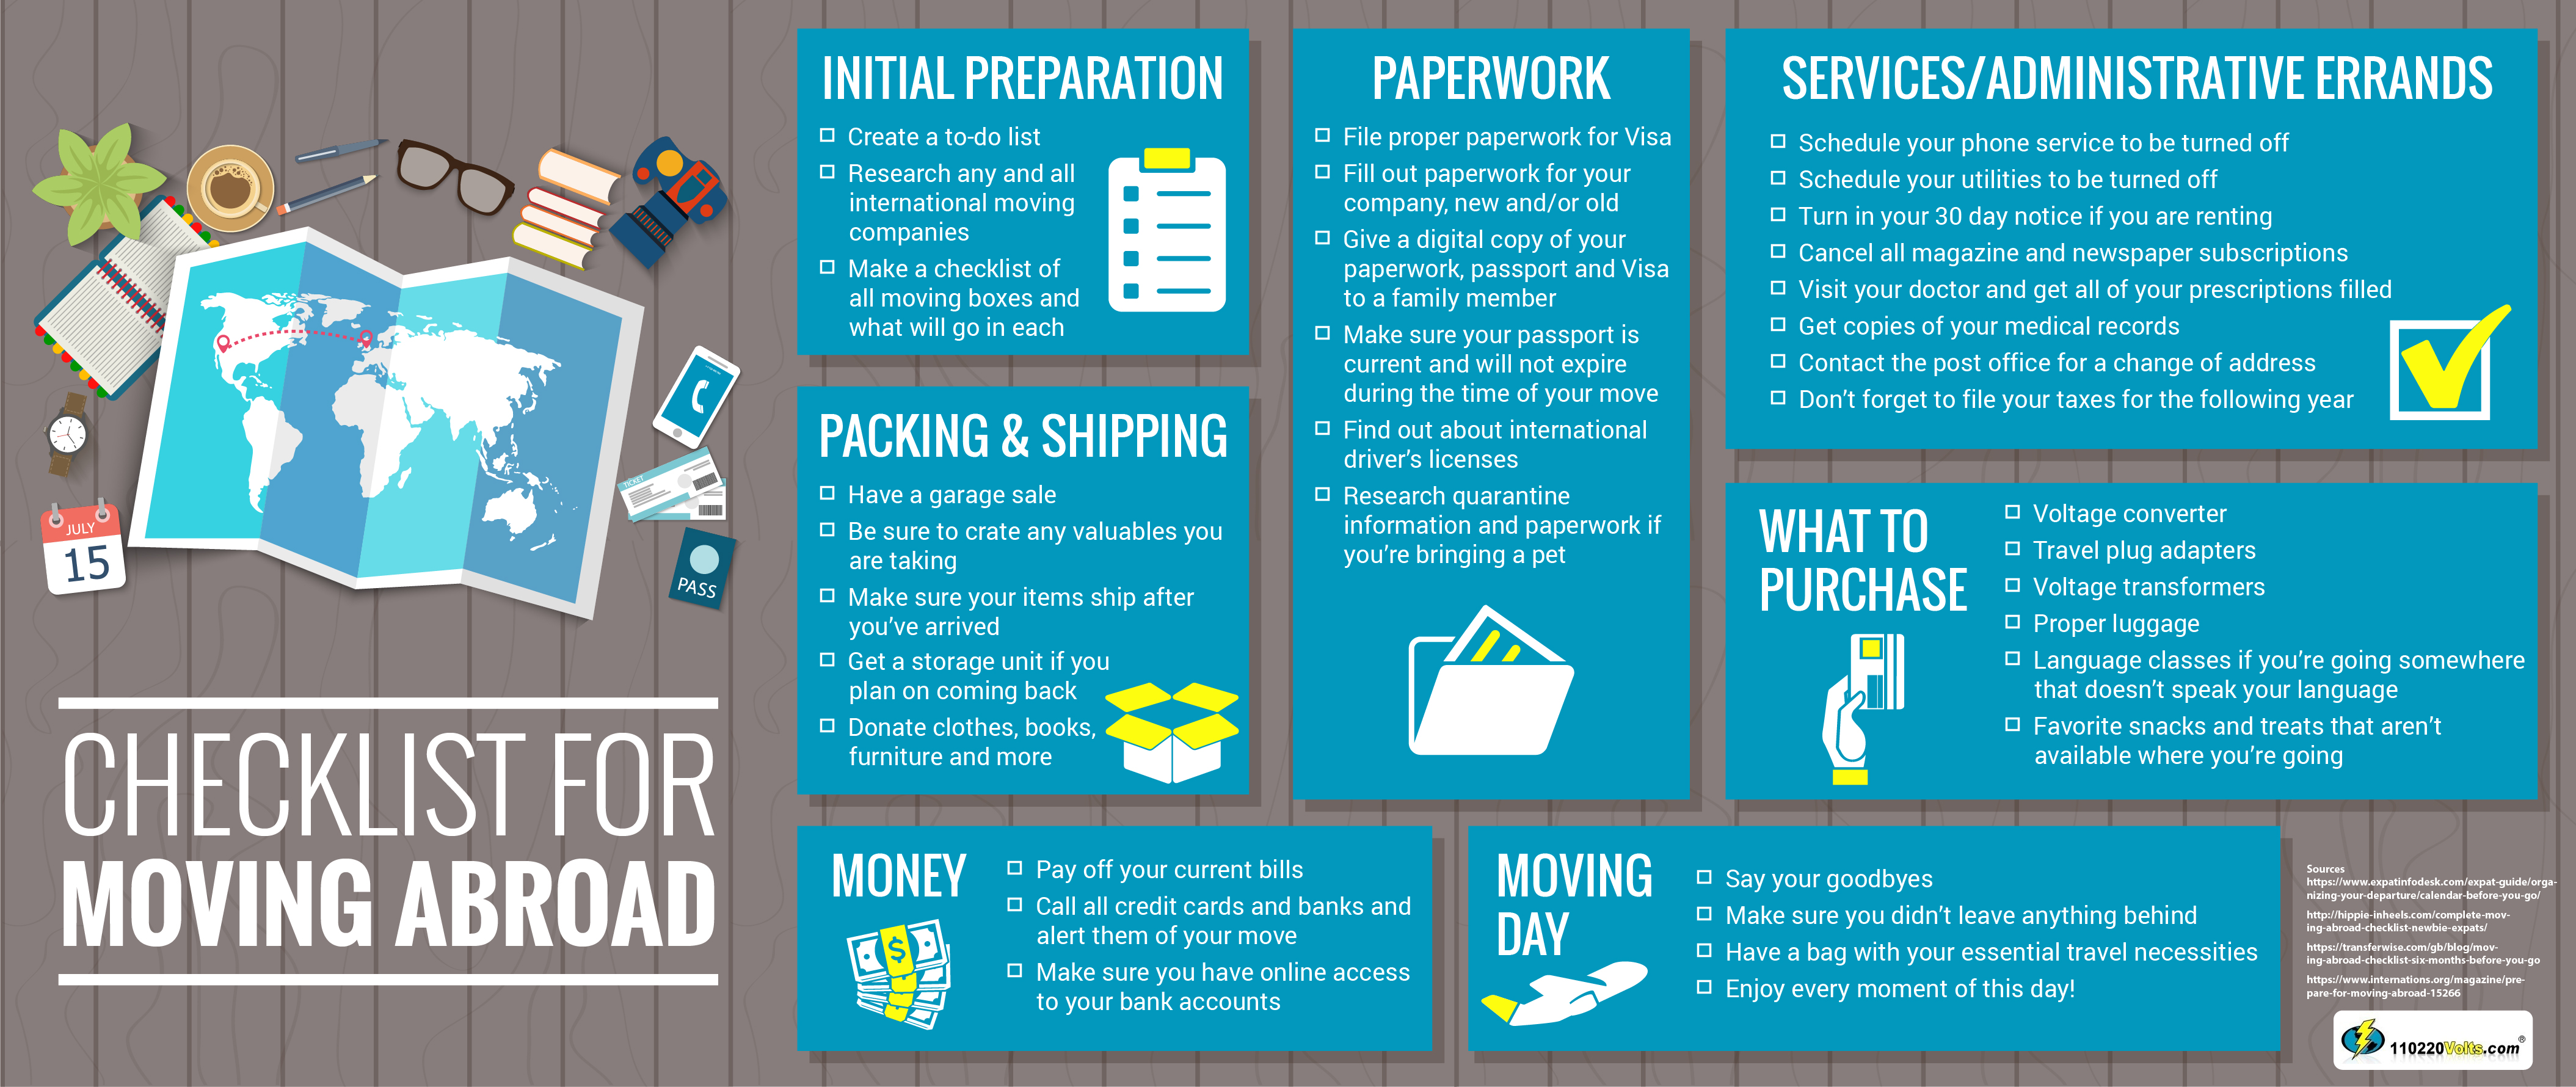 Infographic: Checklist for Moving Abroad